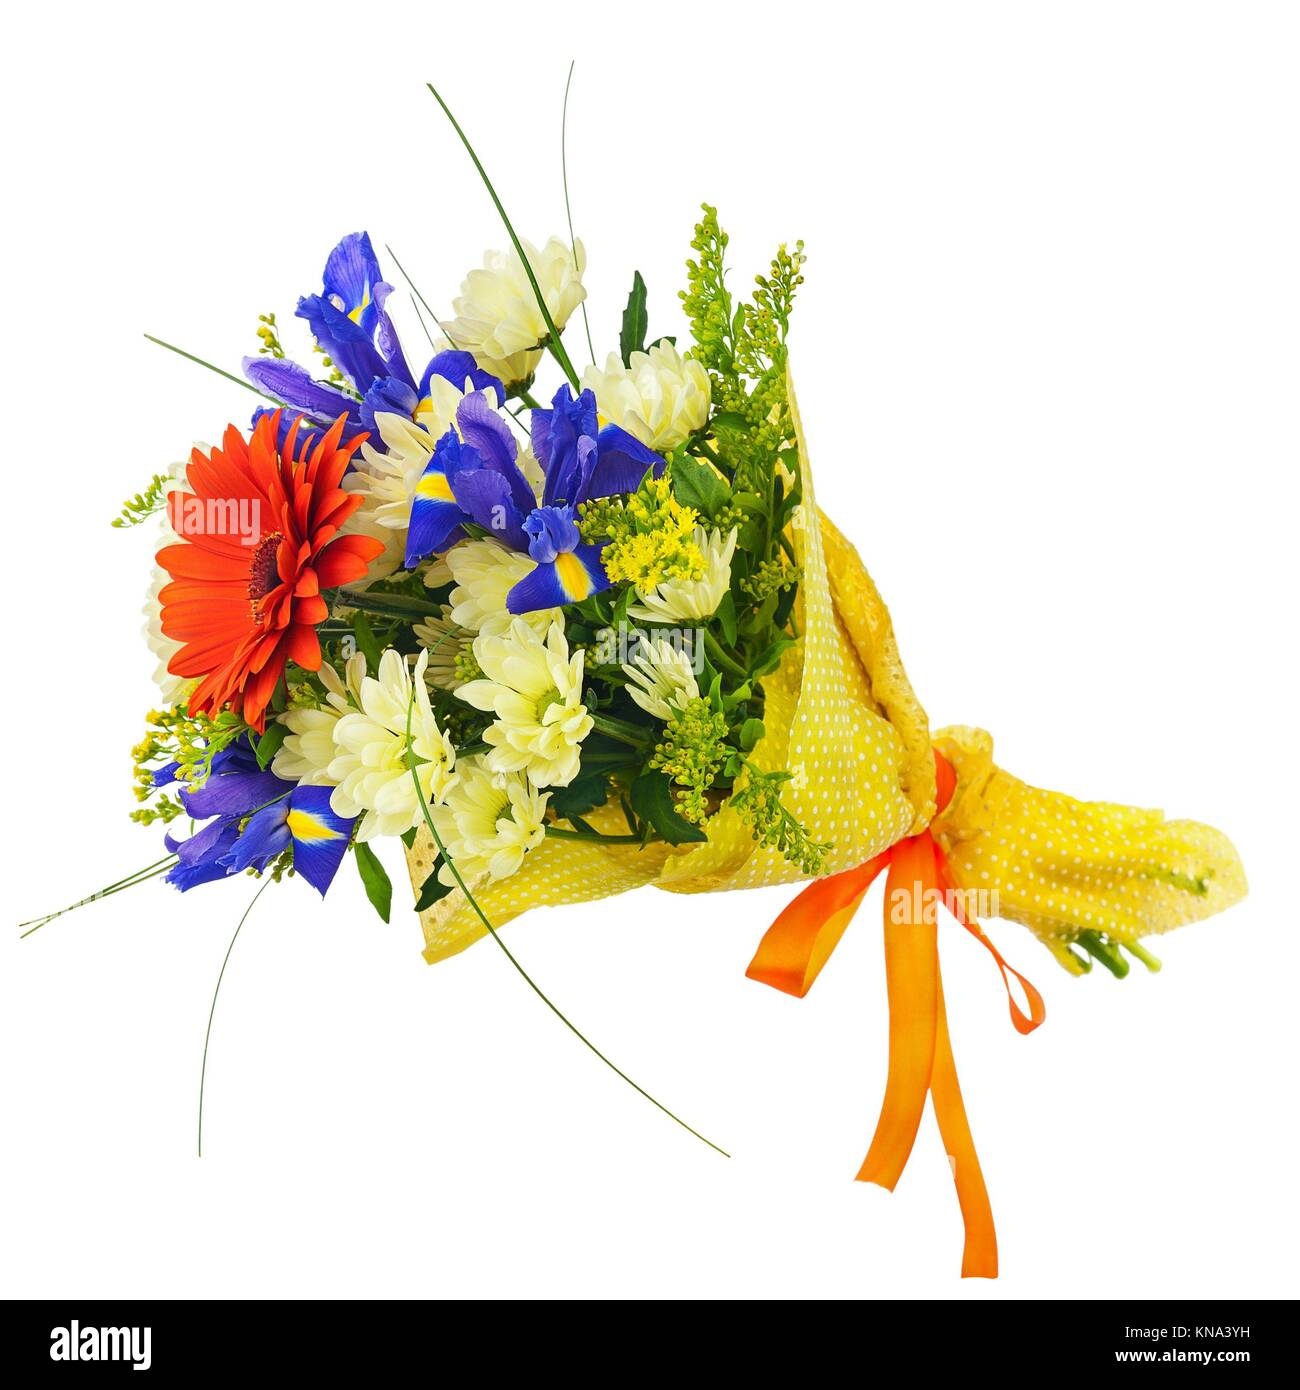 Mazzo Di Fiori Iris.Flower Bouquet From Multi Colored Gerbera Iris And Other Flowers